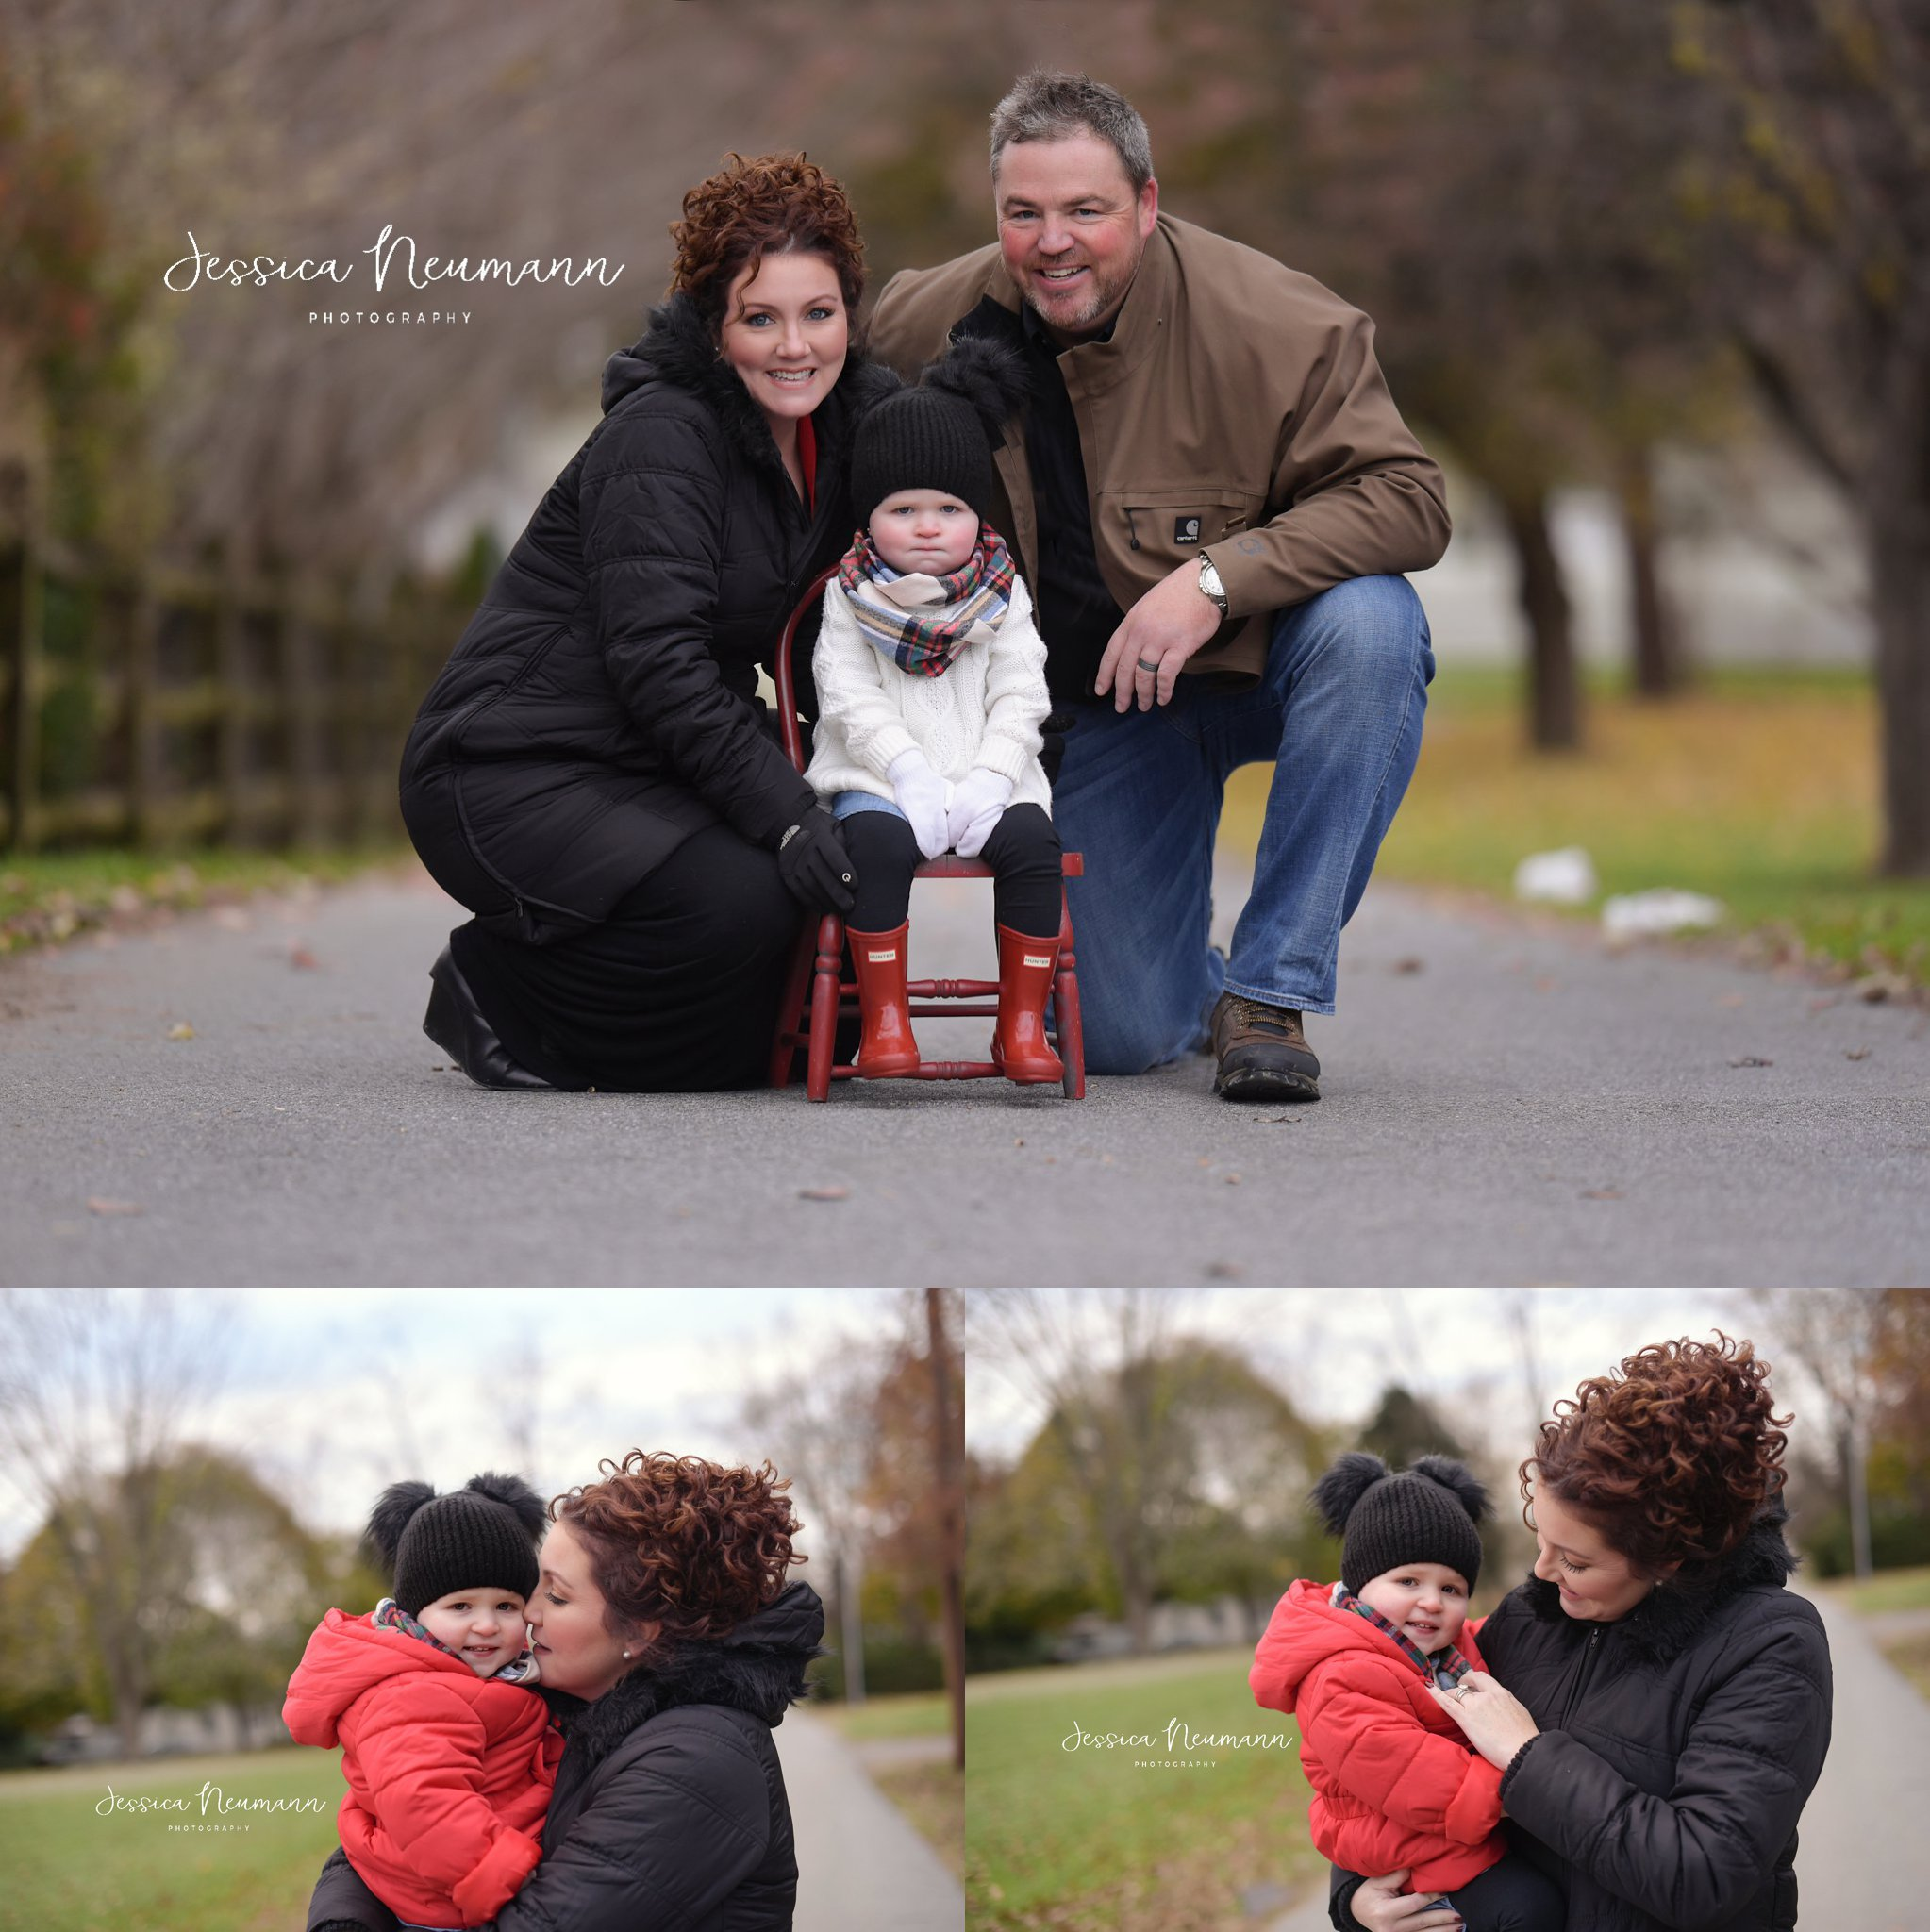 Cold Family outdoor photos in Frederick, MD